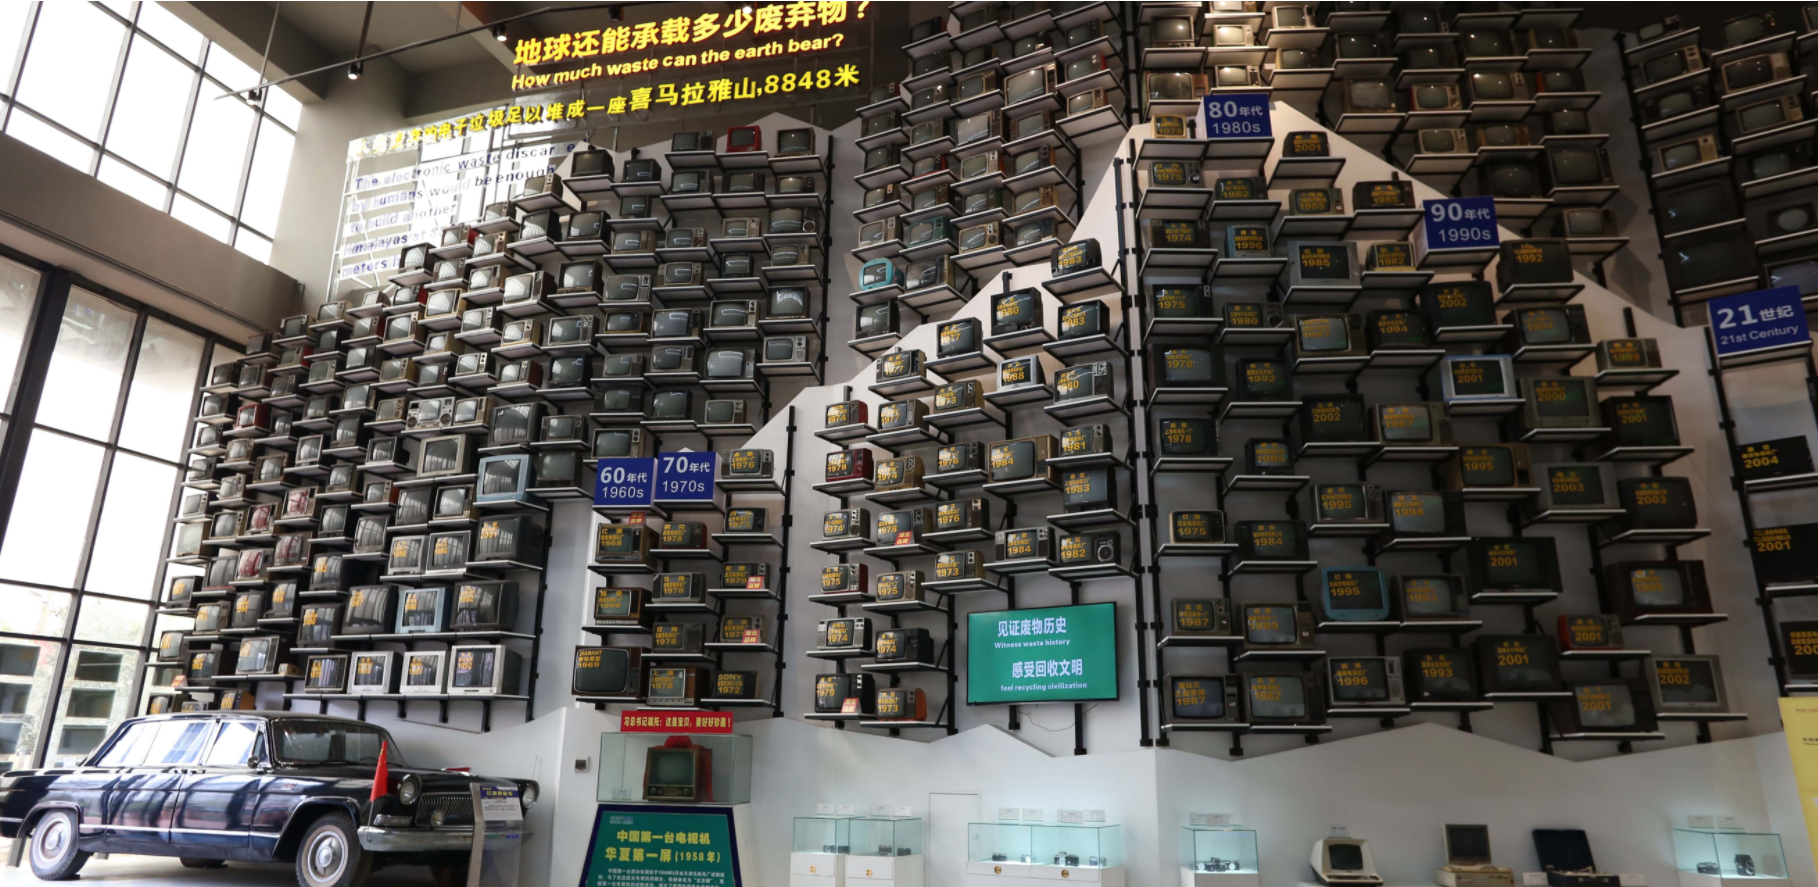 Stacks of old TV's line the walls at GEM Recycling's showroom in Hubei Province. The TV's represent piles of discarded electronic waste that GEM says can be recycled and reused.